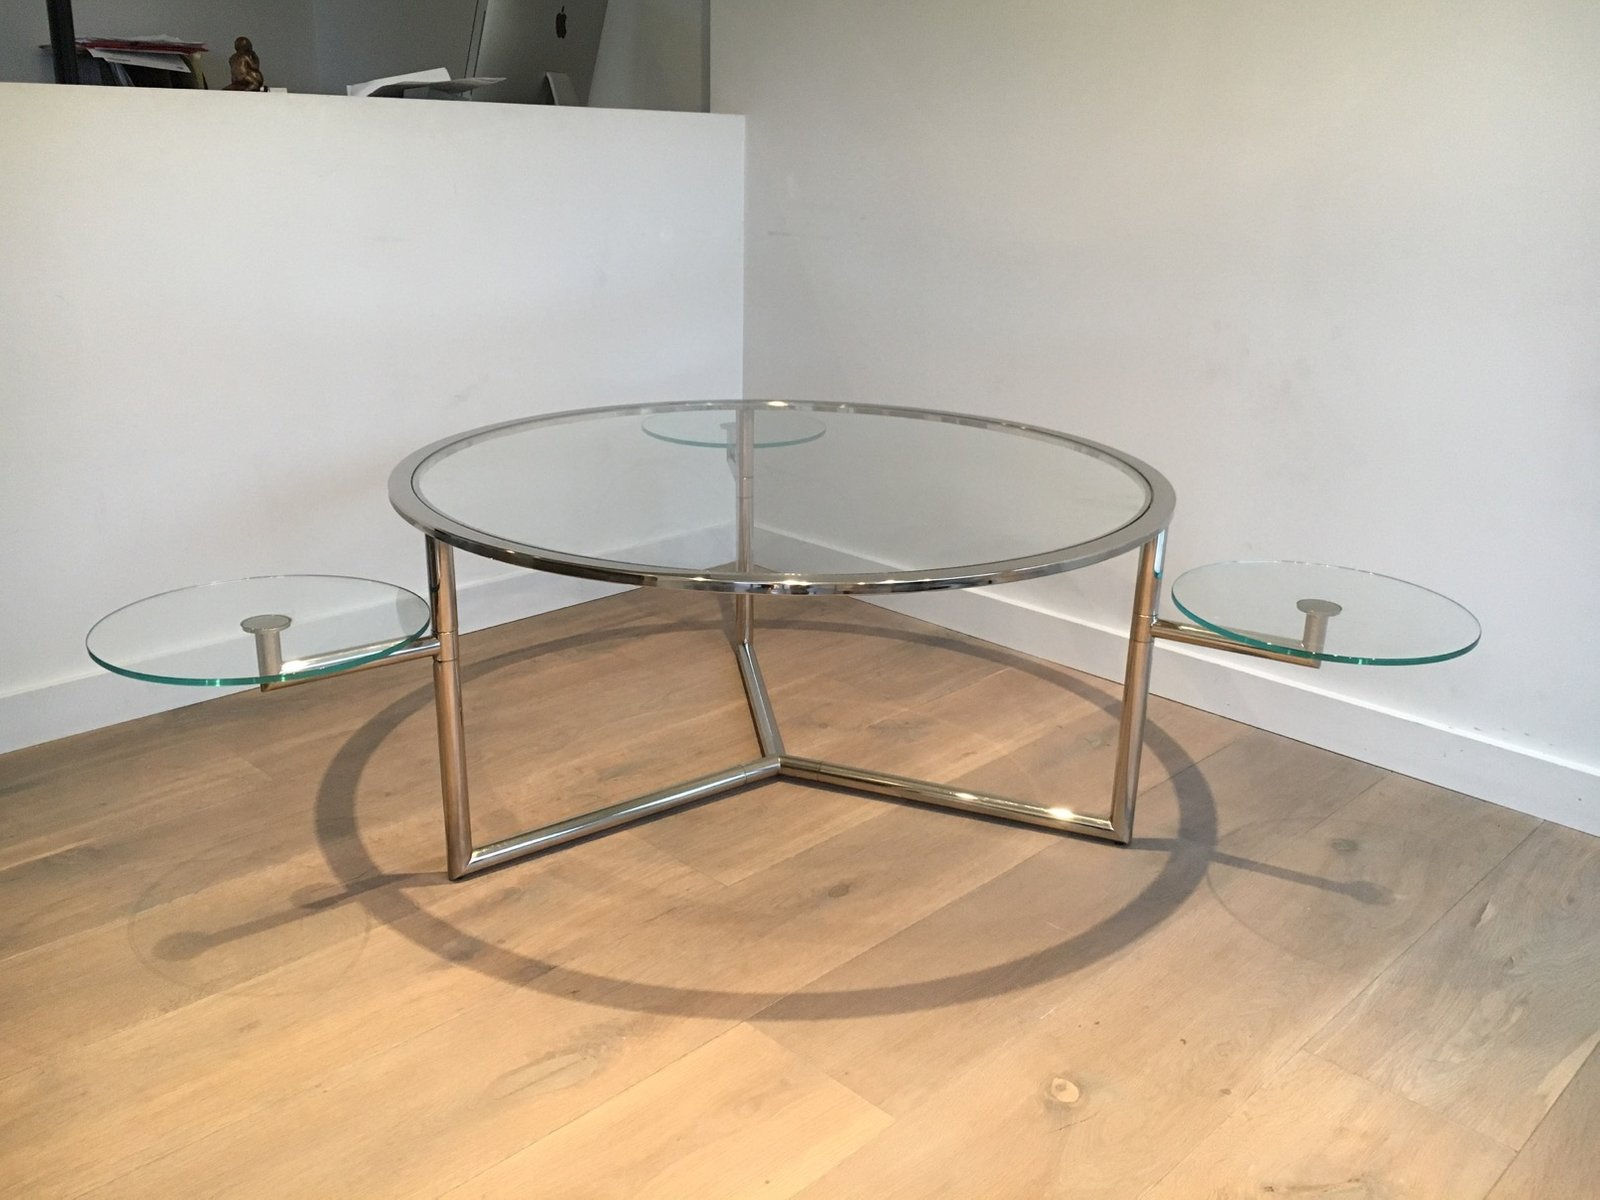 table basse ronde avec plateaux amovibles en verre 1970s. Black Bedroom Furniture Sets. Home Design Ideas